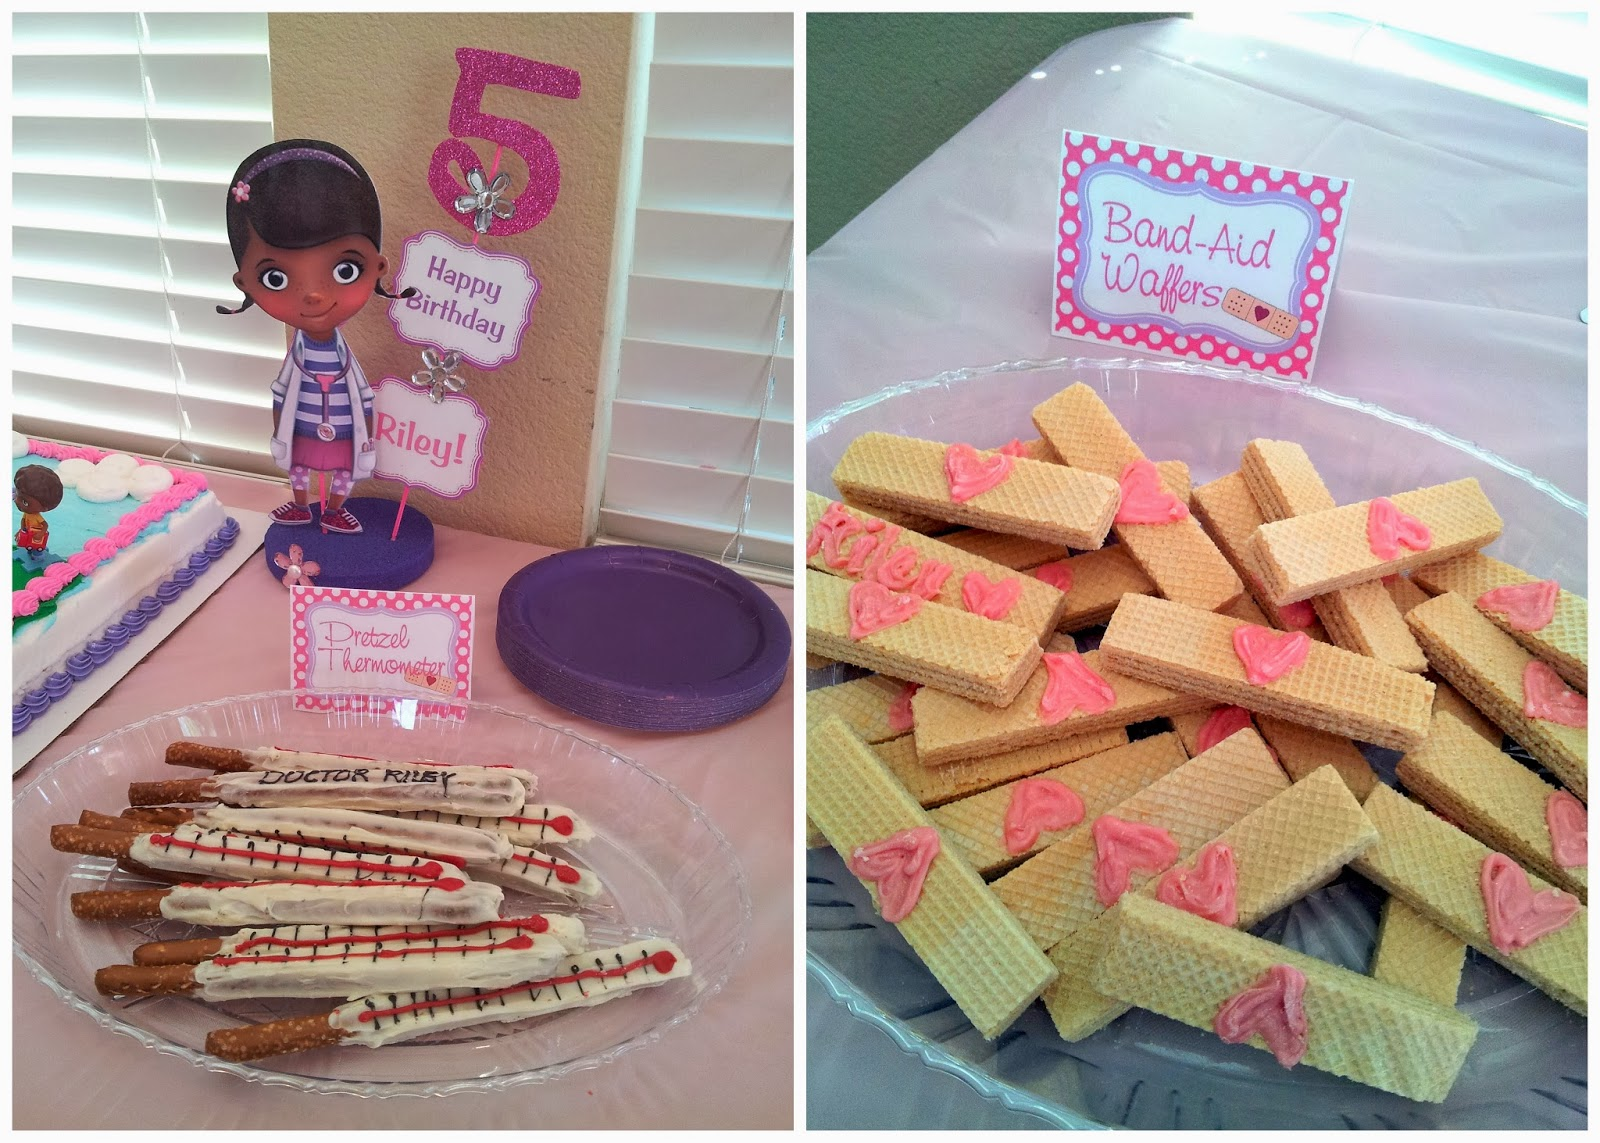 First off I owe our regular Guest Blogger Yajaira Preciado a big acknowledgement. She made these awesome treats and centerpieces that tied right in to the ... & DIY for Mommies: Doc McStuffins Birthday Party